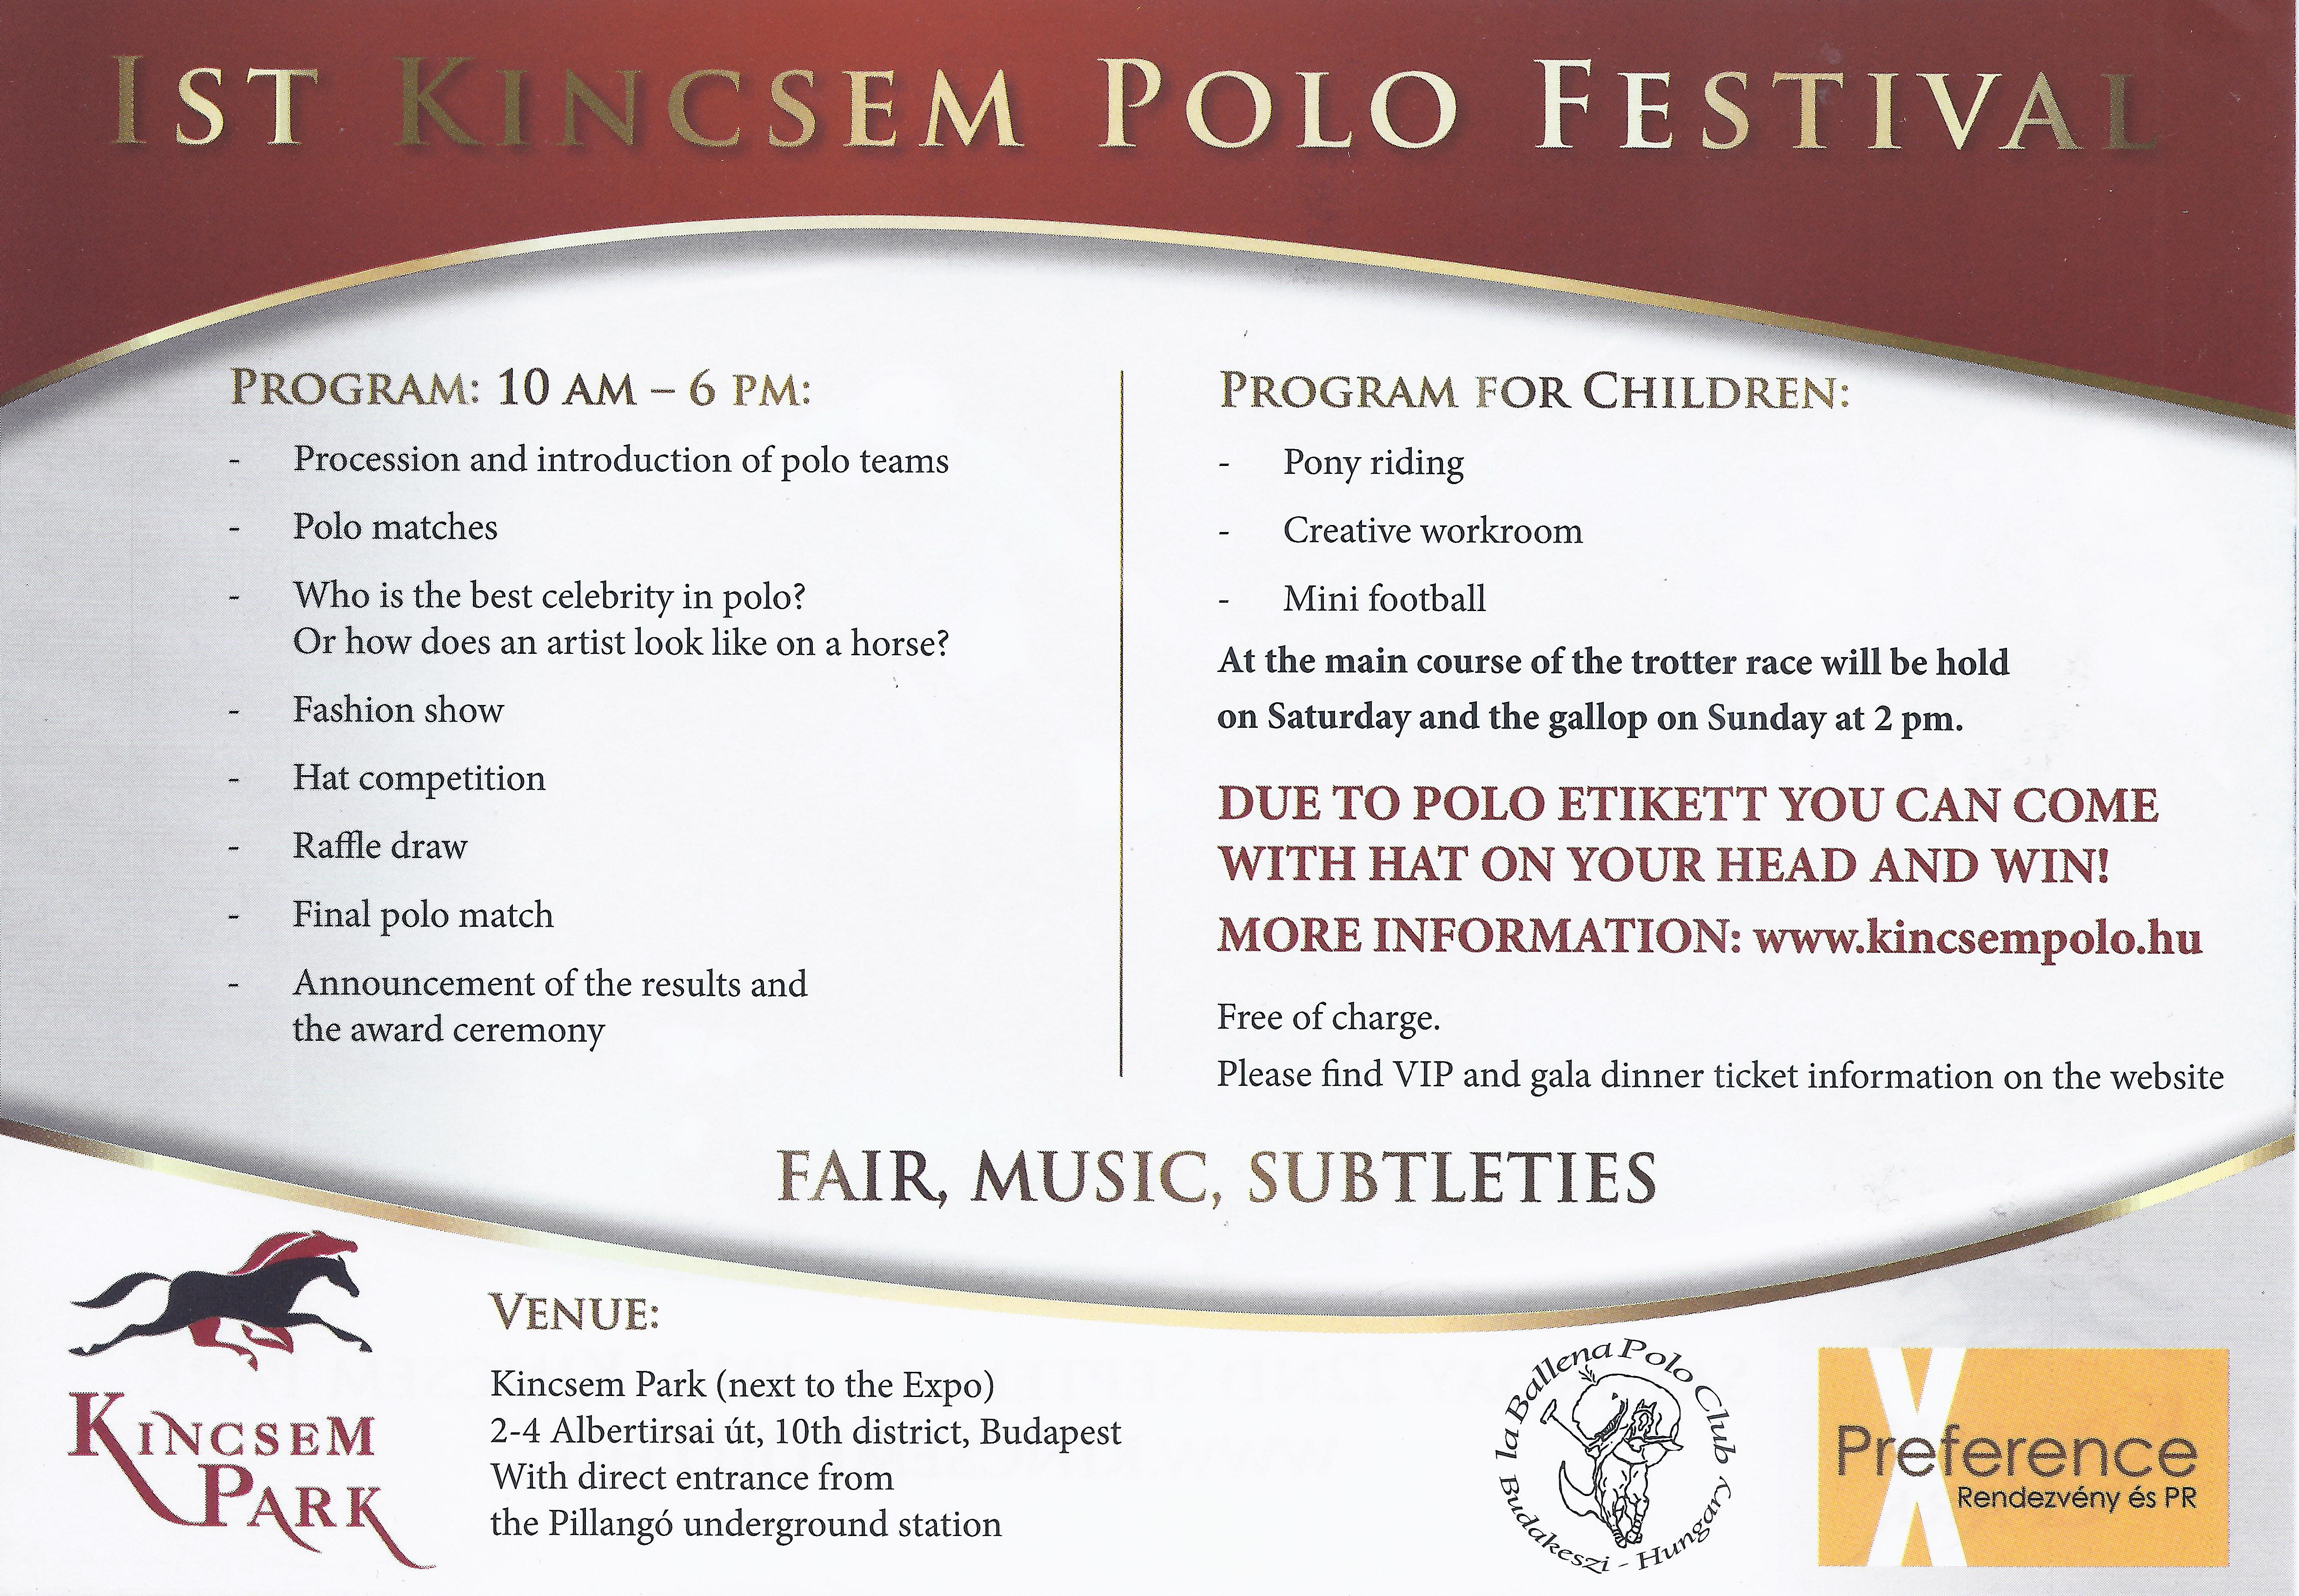 Updated: Kincsem Polo Festival, Budapest - Cancelled